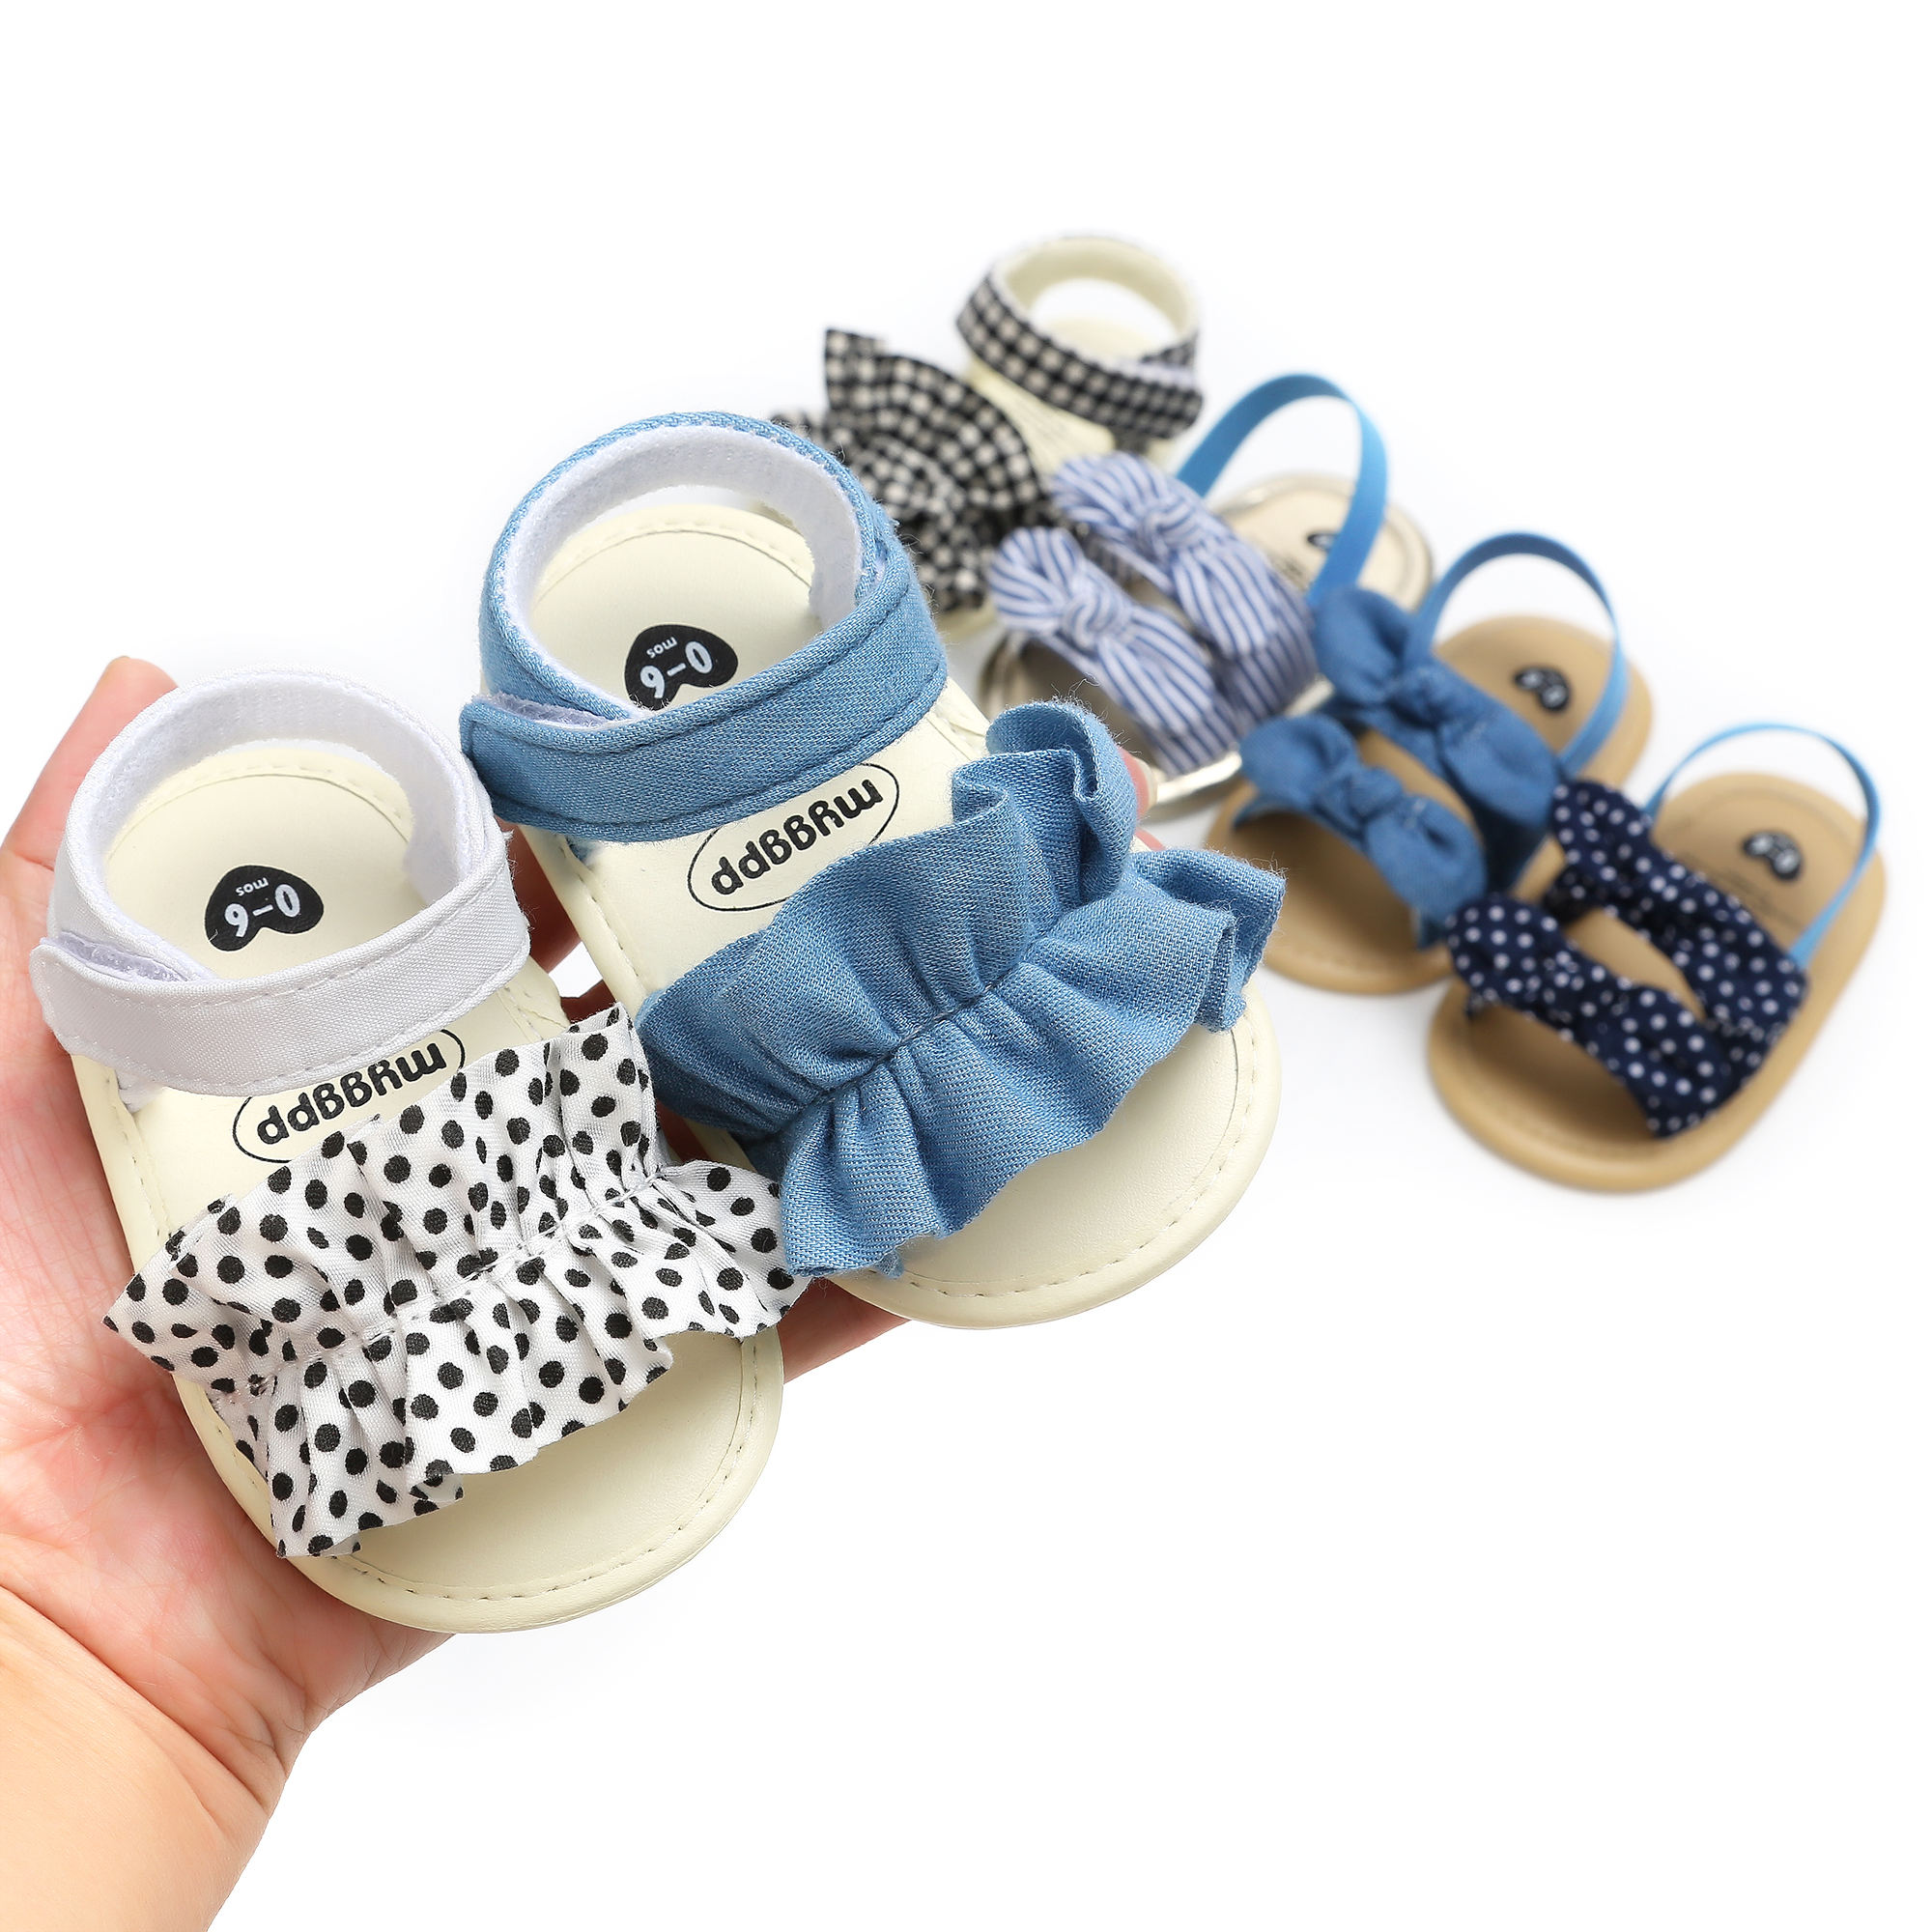 New designed Cotton fabric soft-sole 0-18 months anti-slip Walking infant crib Baby girl sandals